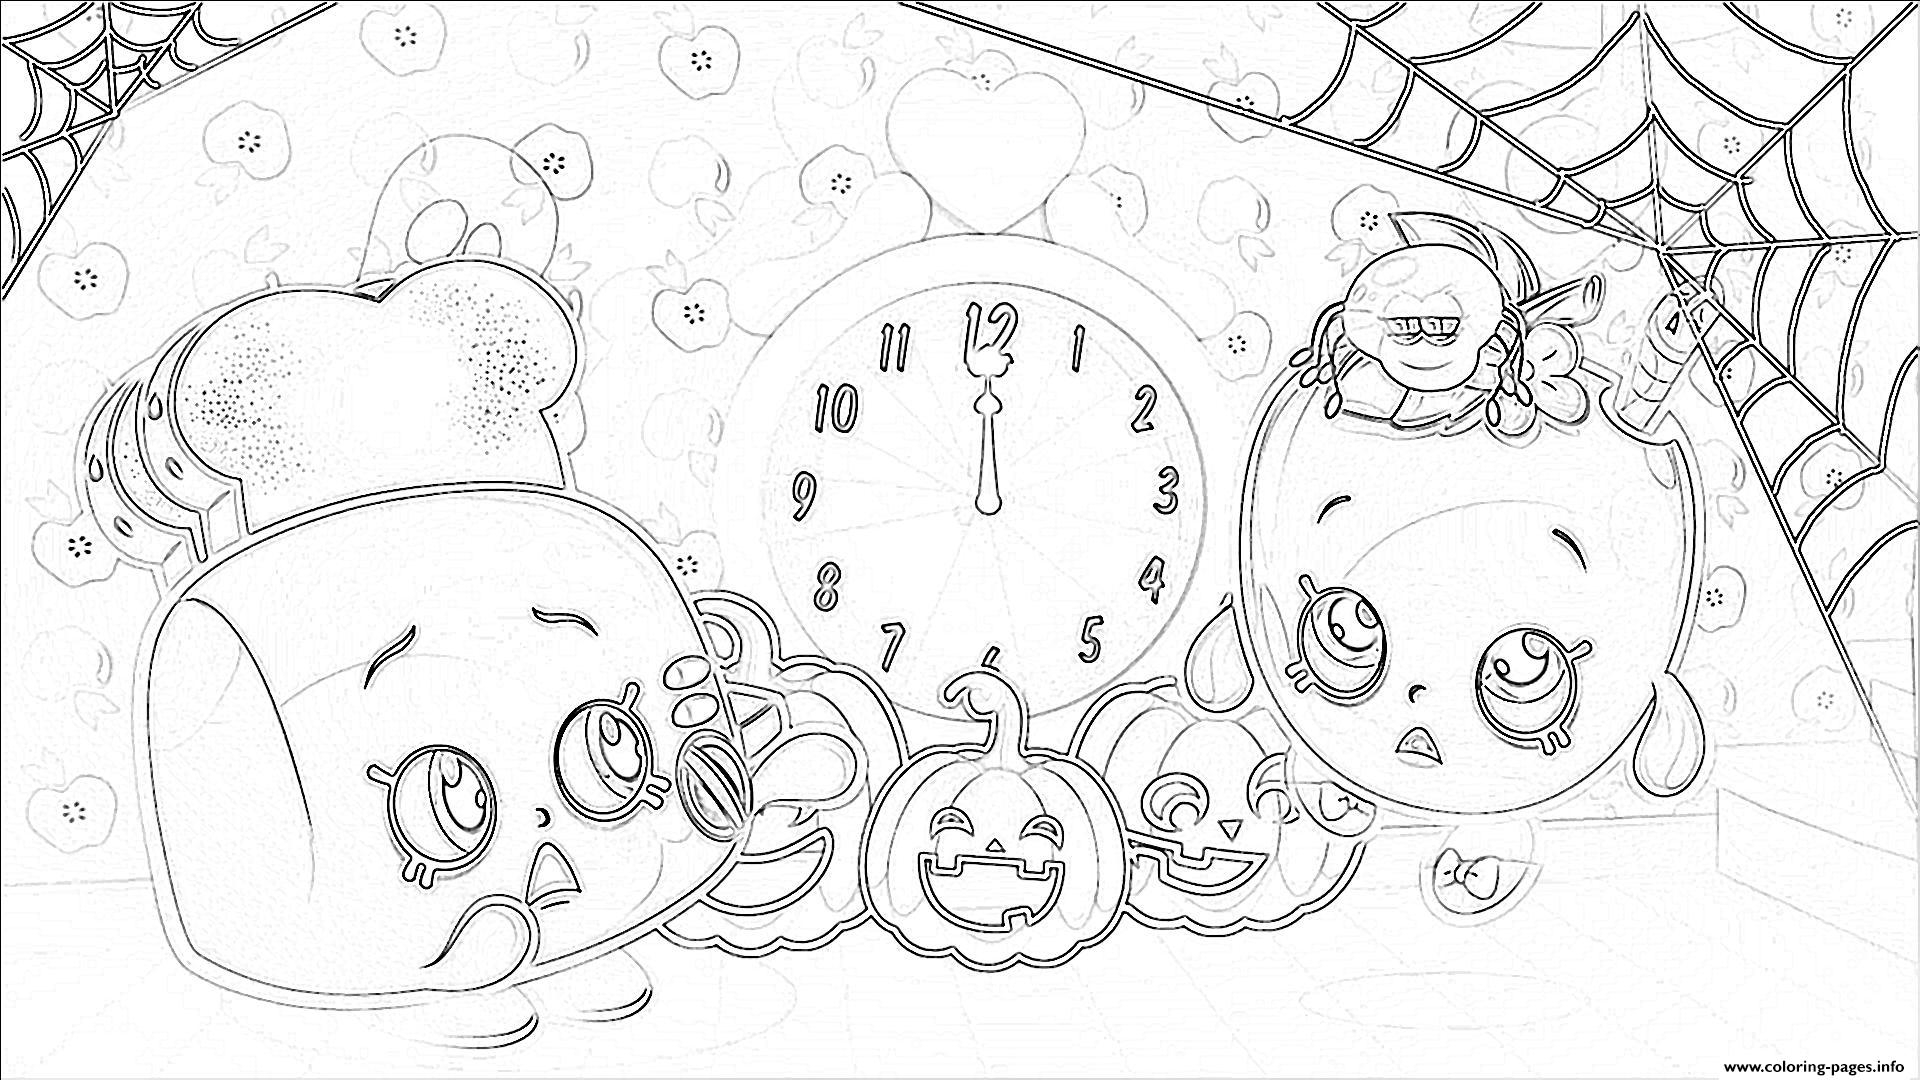 Halloween Pumpkin Coloring Pages Printables Shopkins Halloween Pumpkins Coloring Pages Printable